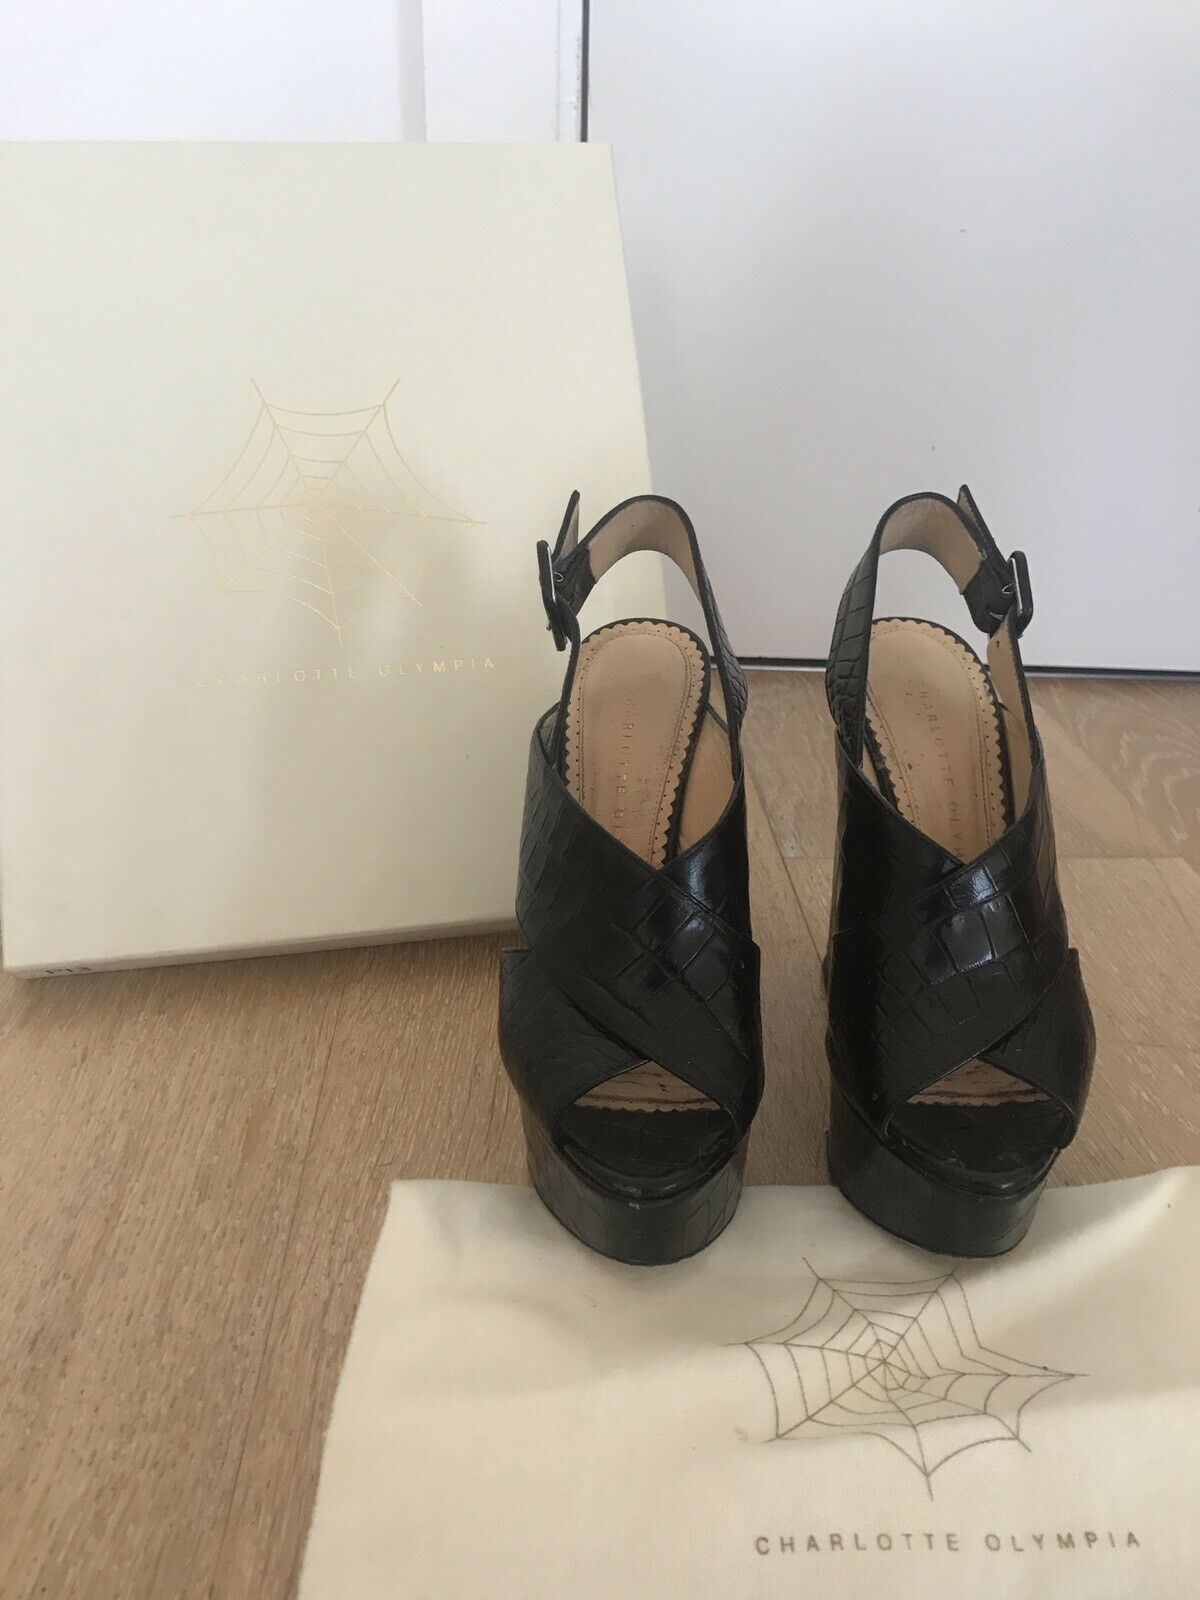 Charlotte Olympia shoes Size 36